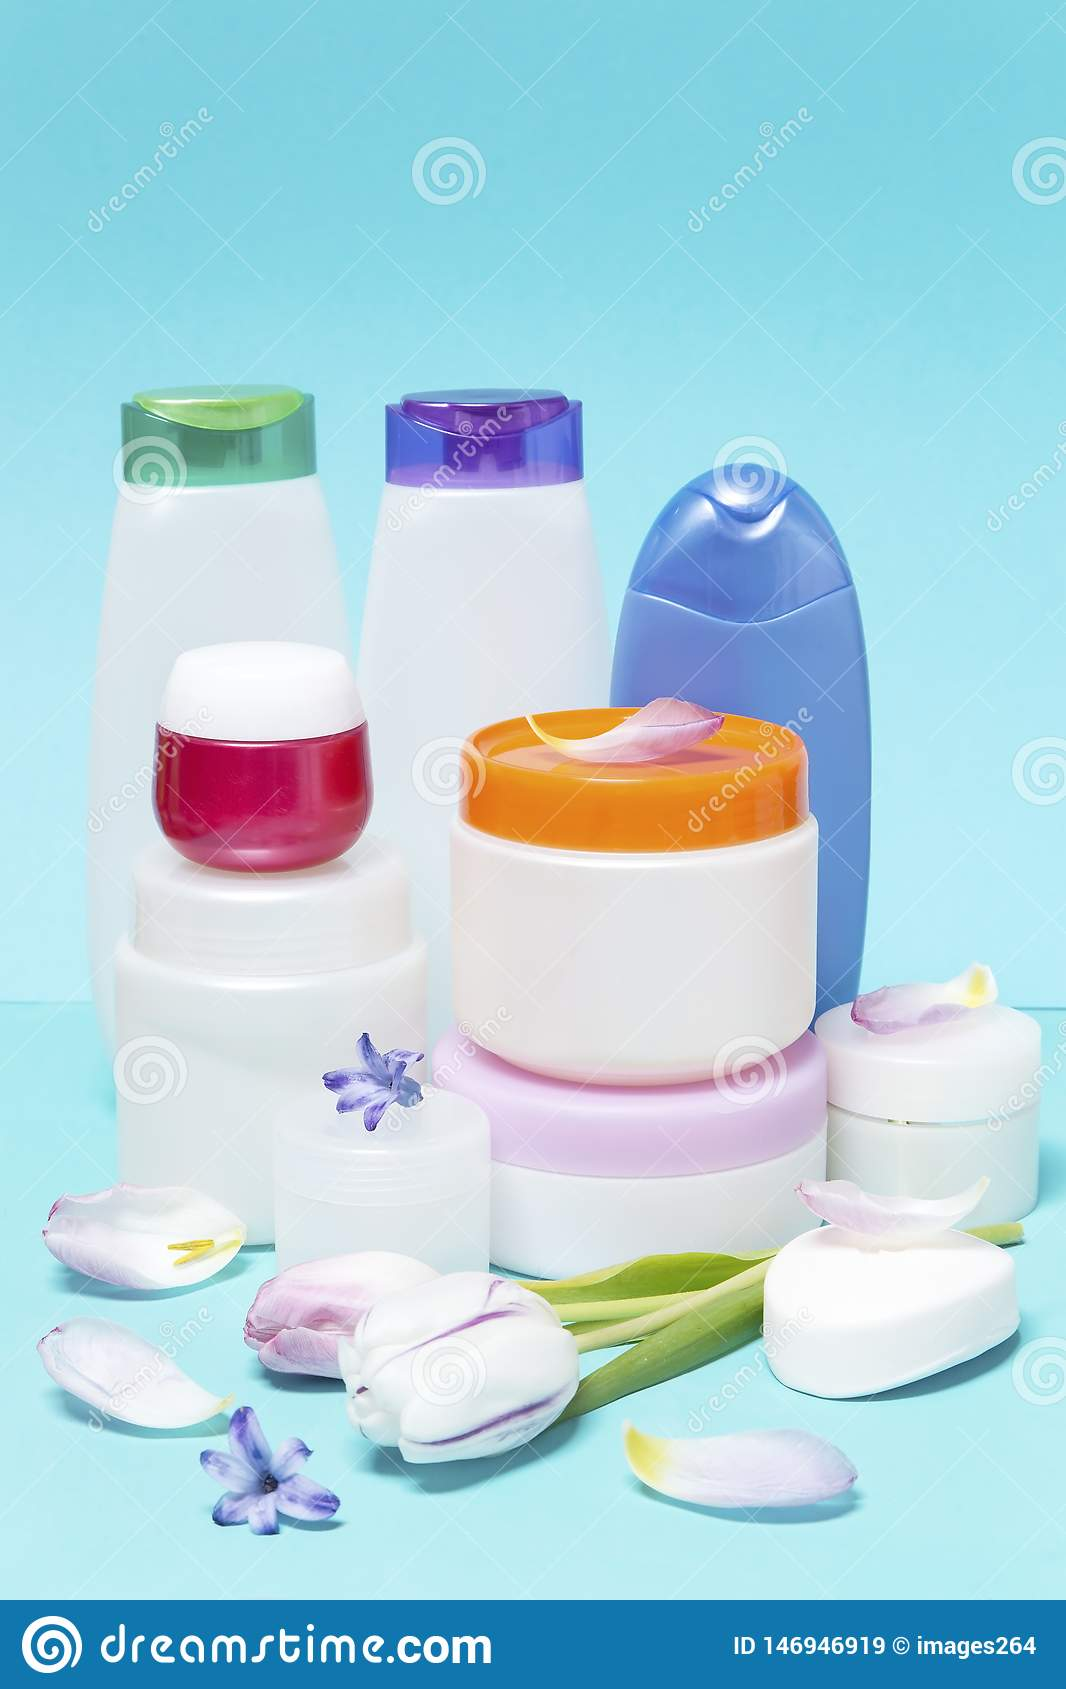 Cosmetics and hygiene products